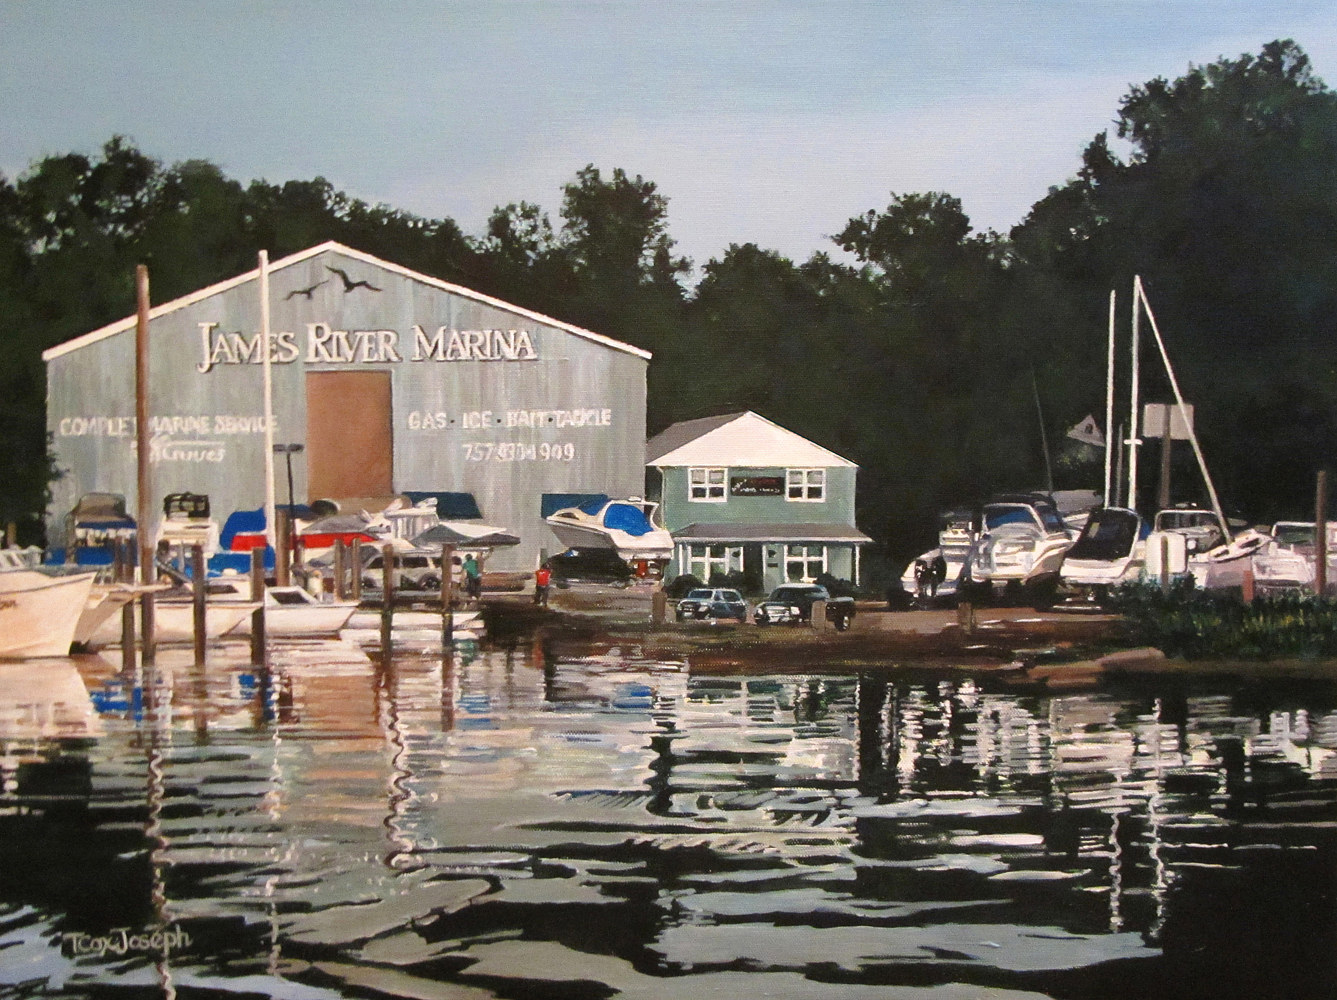 James River Marina Reflections II  by Terry Cox-Joseph